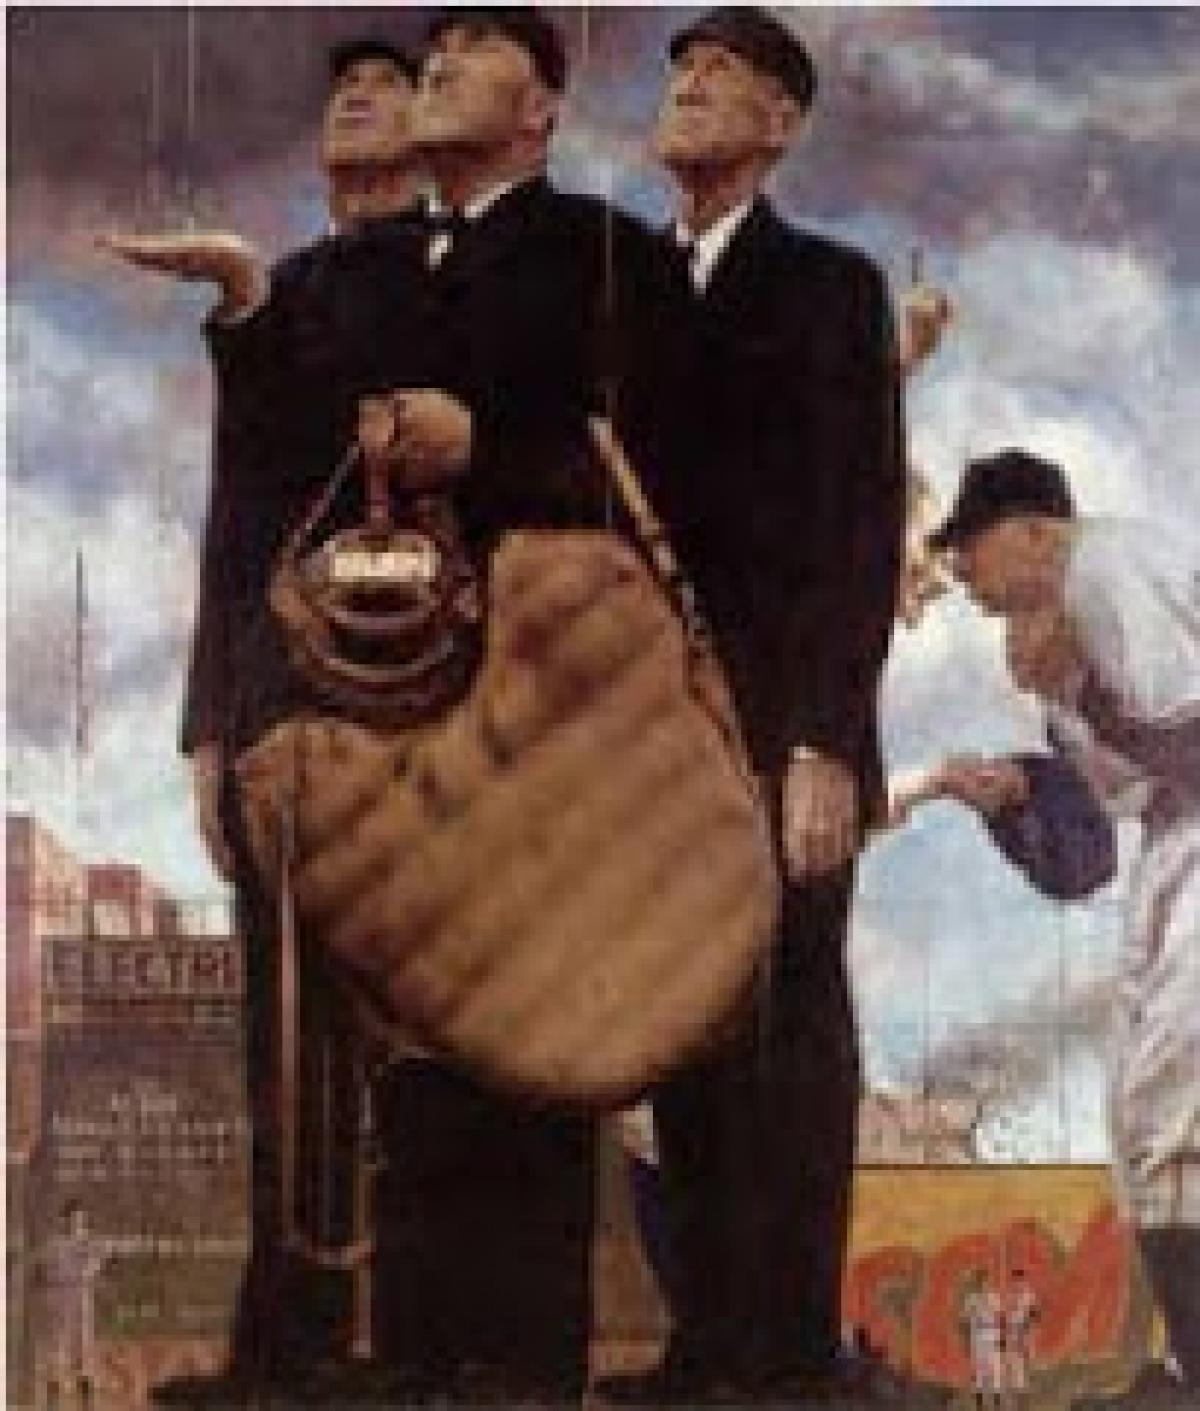 an analysis of the topic of the norman rockwell Norman percevel rockwell was an american author, painter and illustrator his works have a broad popular appeal in the united states for their reflection of .